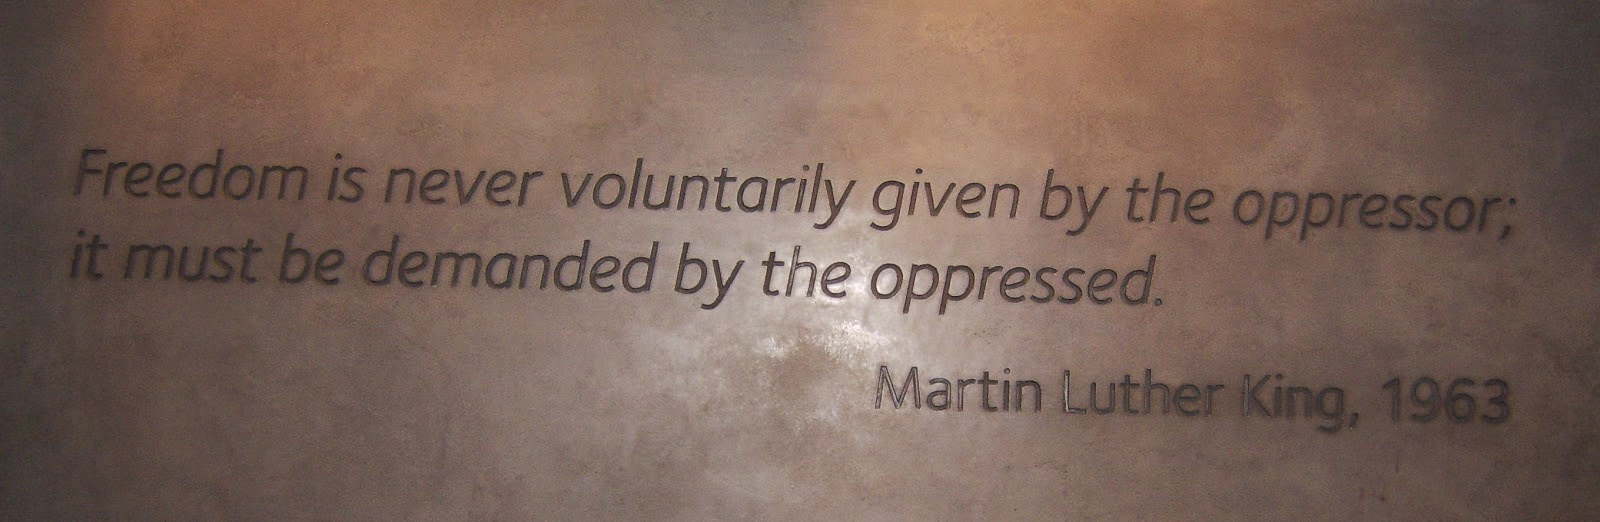 inscription Freedom is never given voluntarily by the oppressor;  It must be demanded by the oppressed.  Martin Luther King, 1963